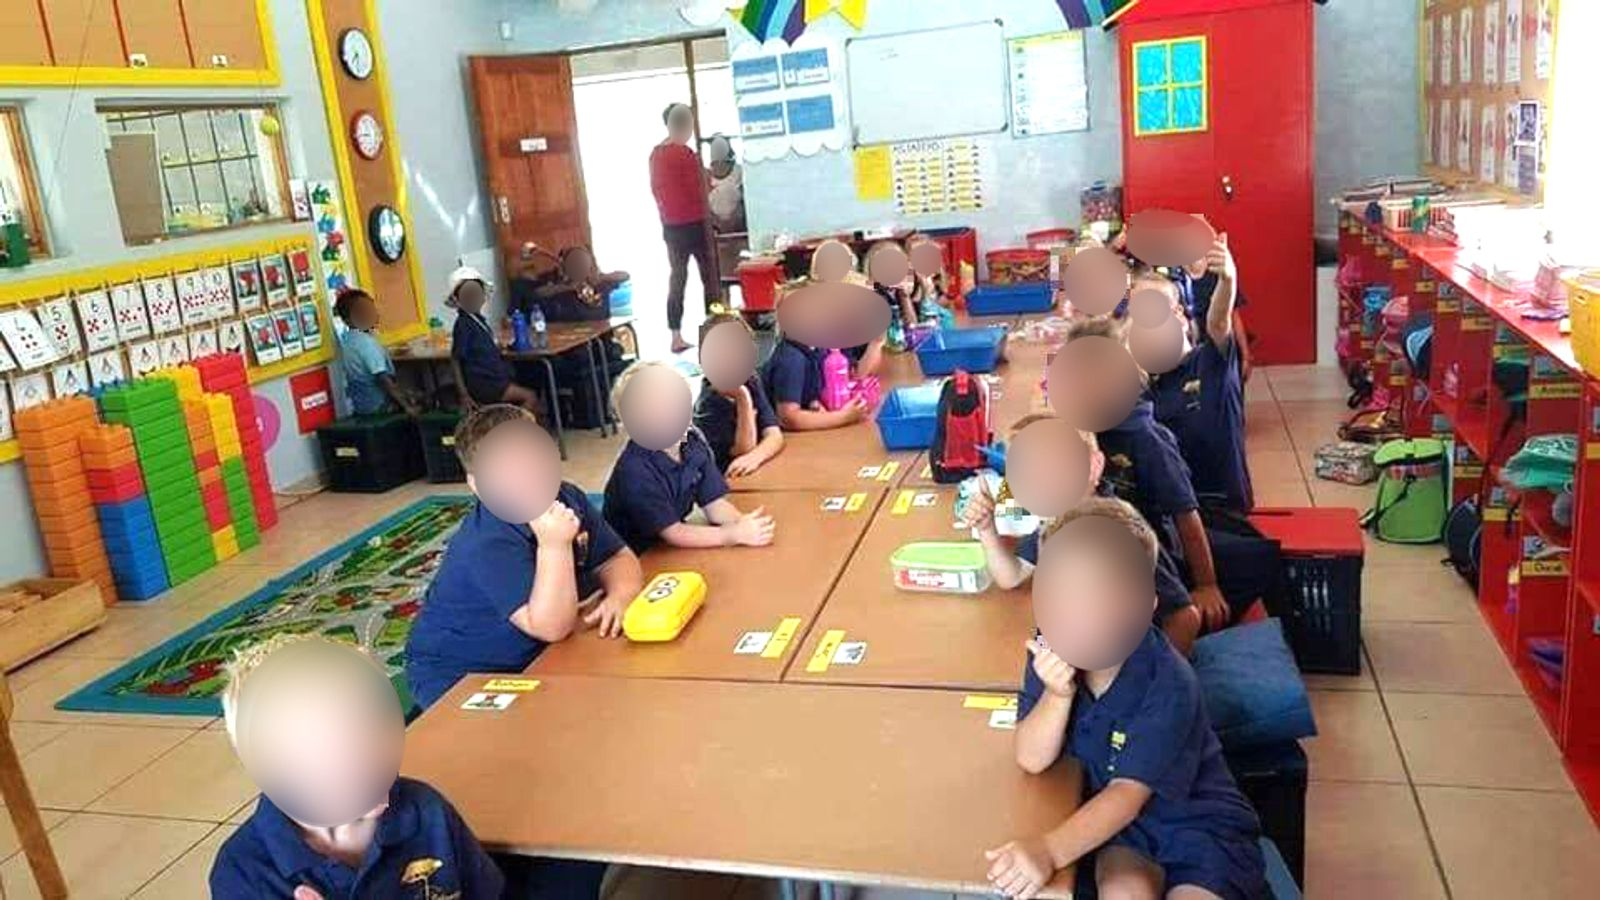 Teacher accused of splitting pupils by race suspended